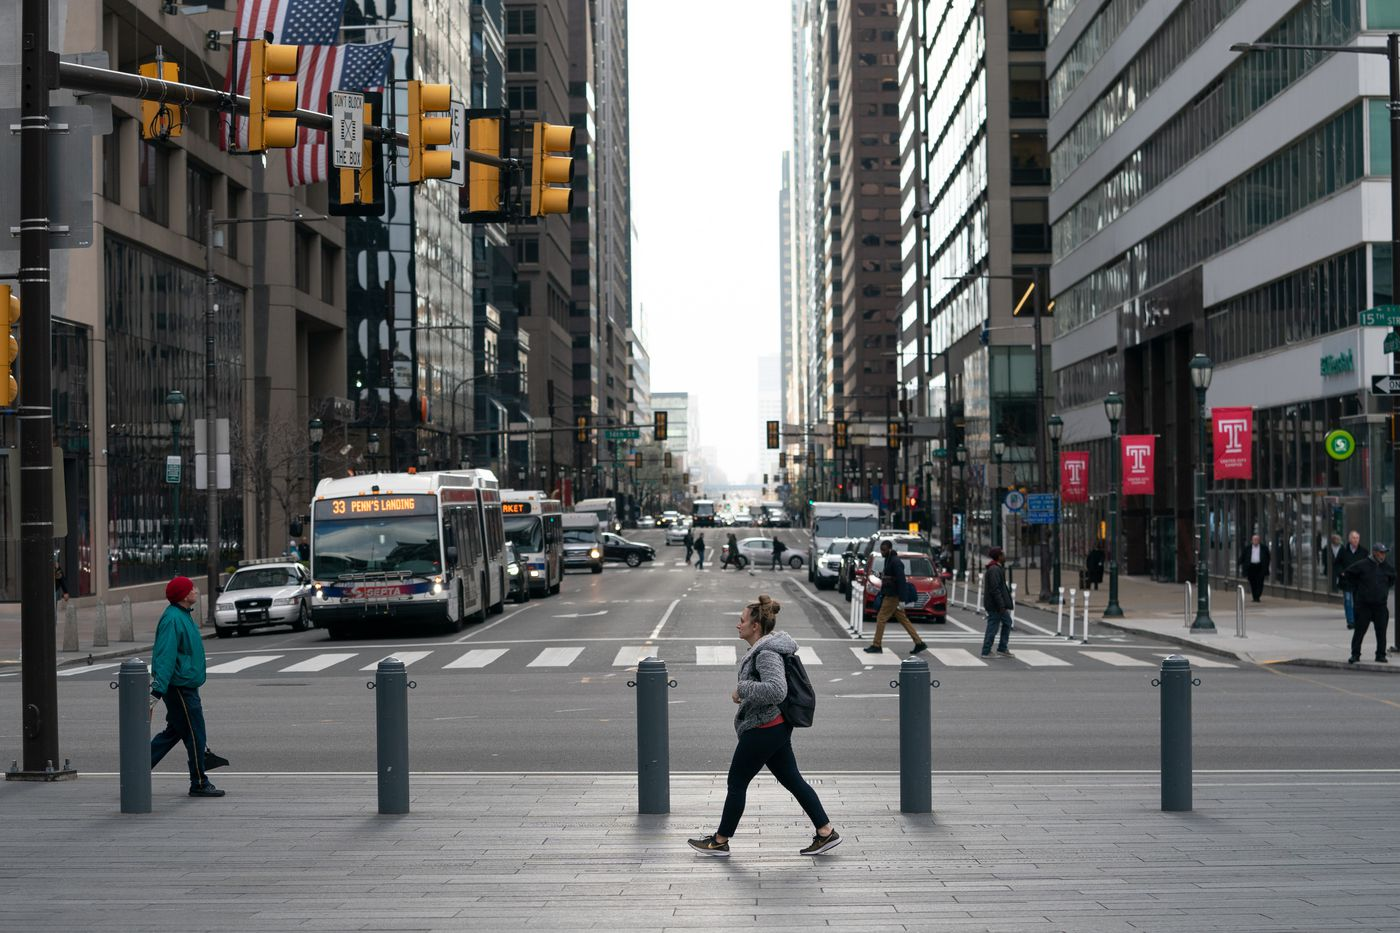 A pedestrian walks past Market Street in Dilworth Plaza along 15th Street at around 5:30pm in Philadelphia, March 17, 2020, on the first day of the shutdown of non-essential businesses. The coronavirus has been spreading across the globe since January, and now has been identified in the Philadelphia region.